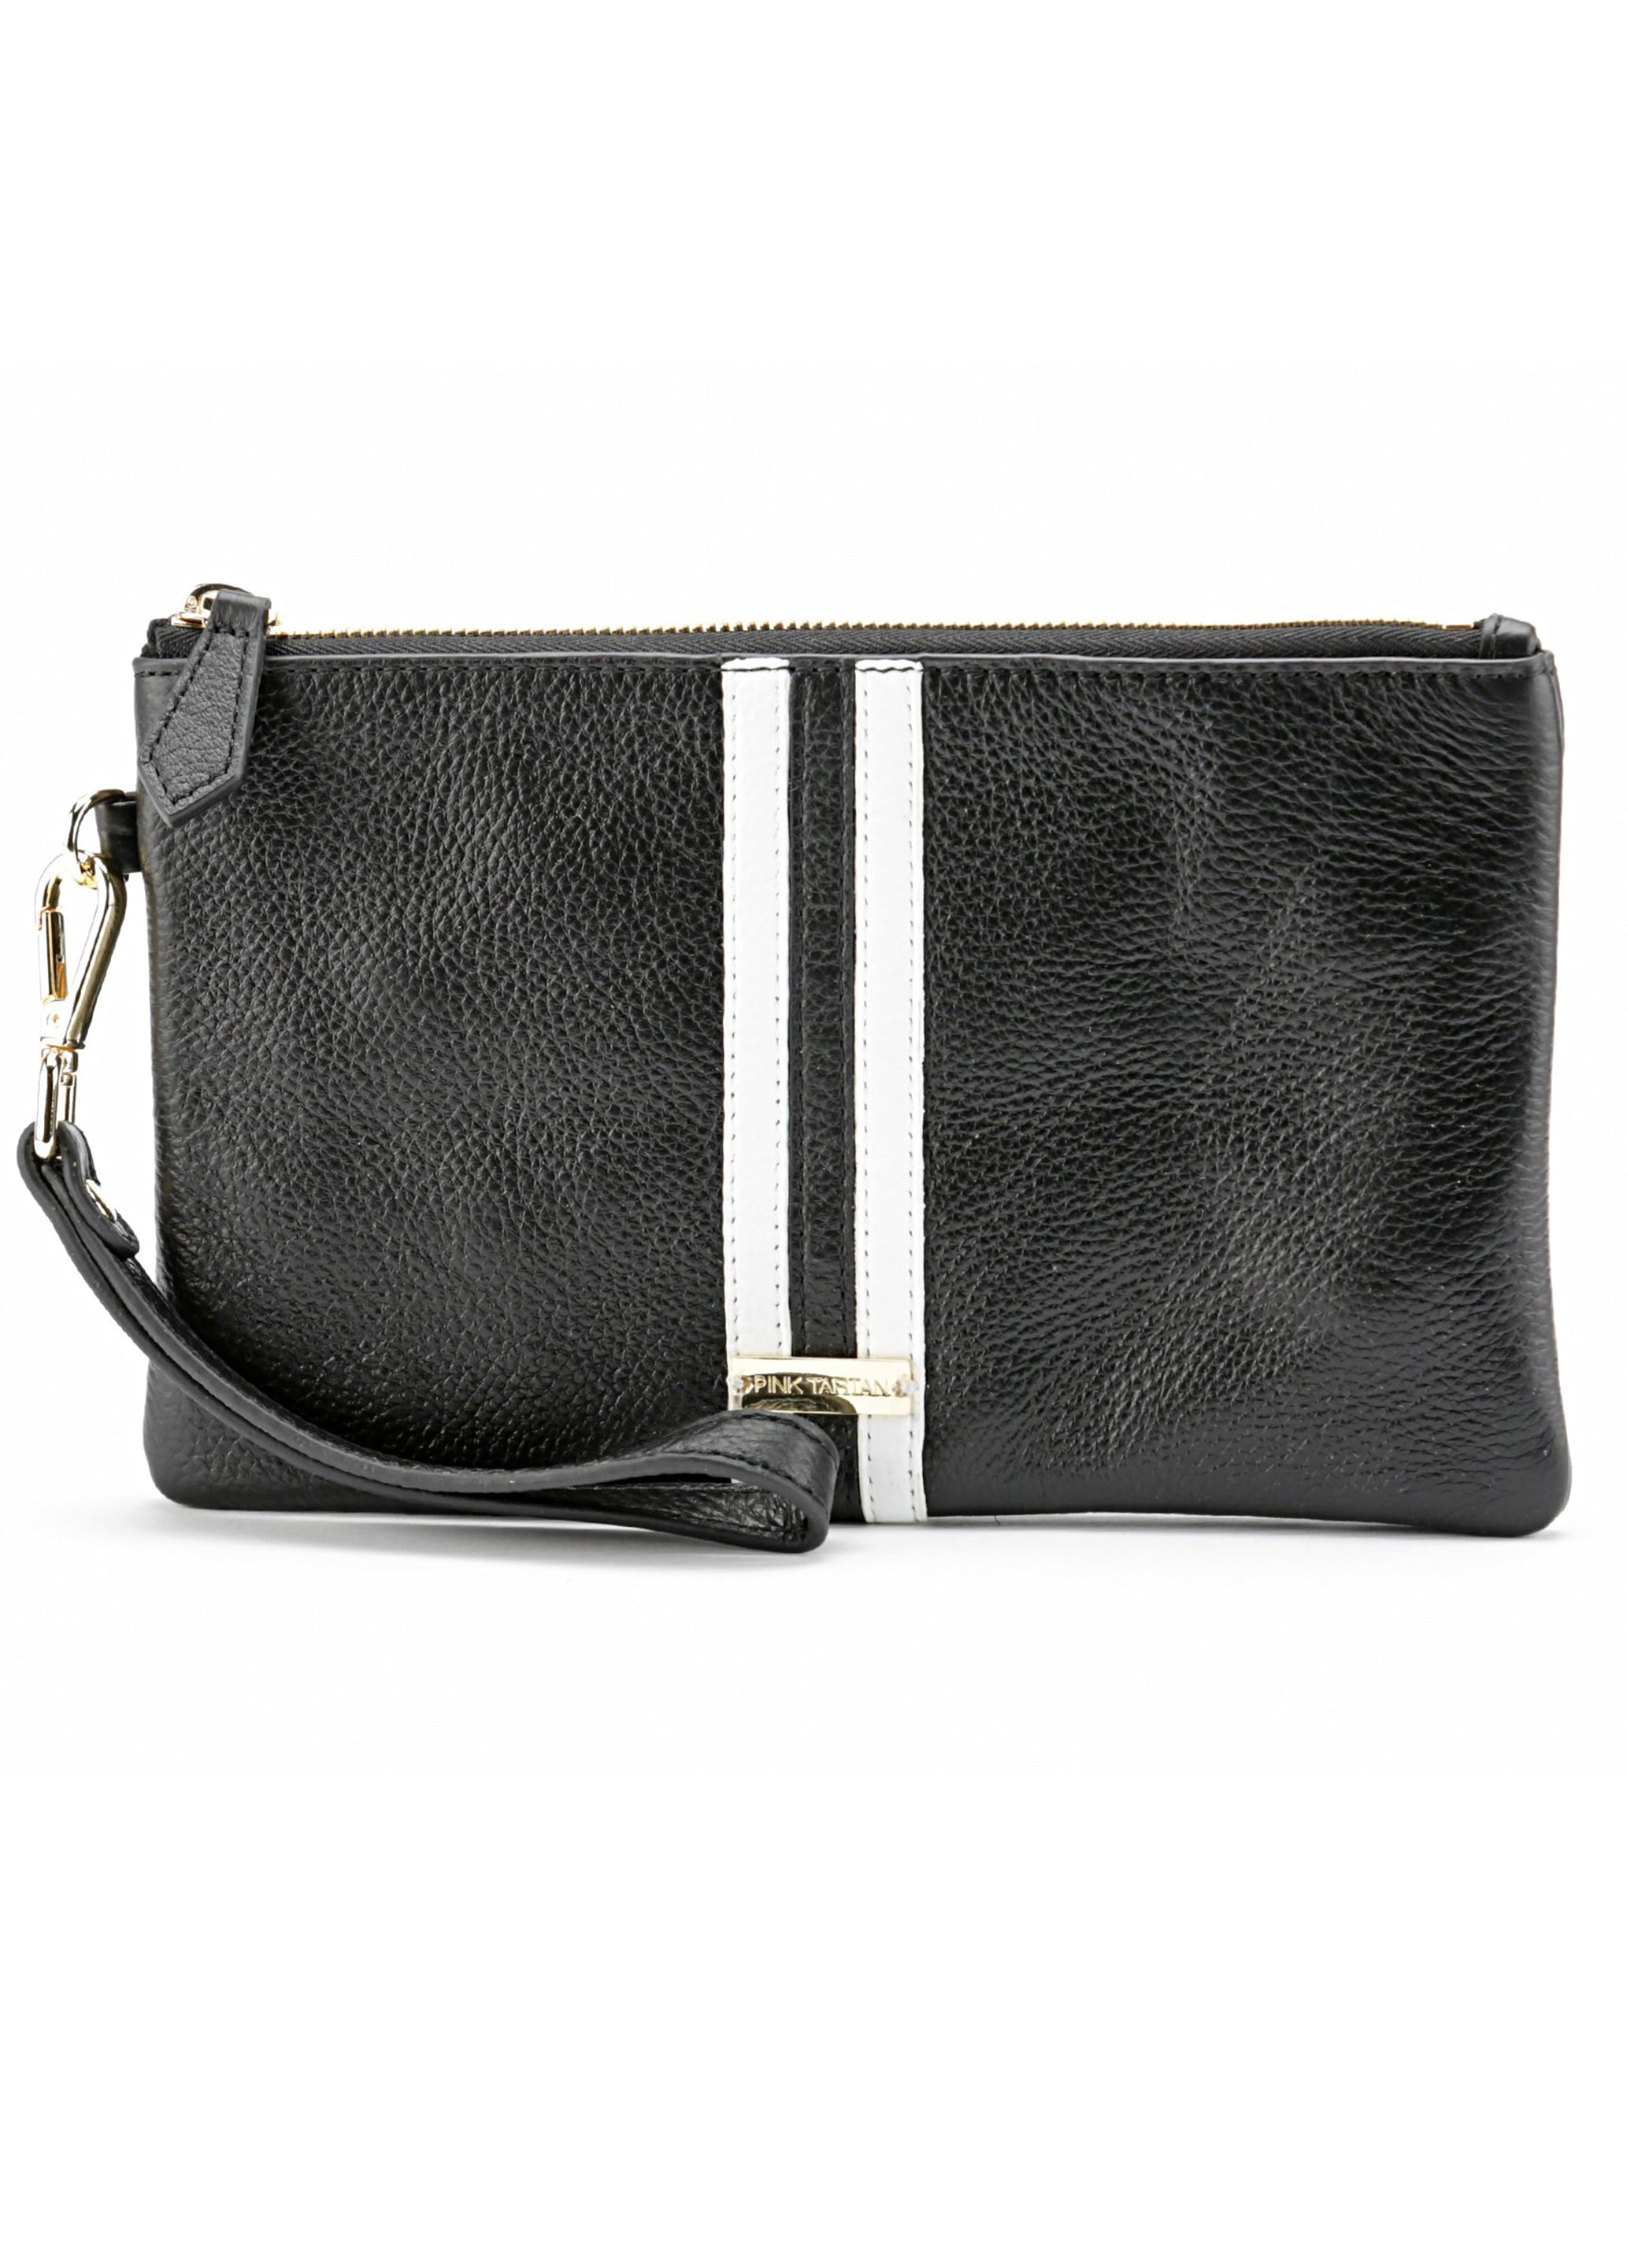 Wristlet Pebble Leather - Black & White